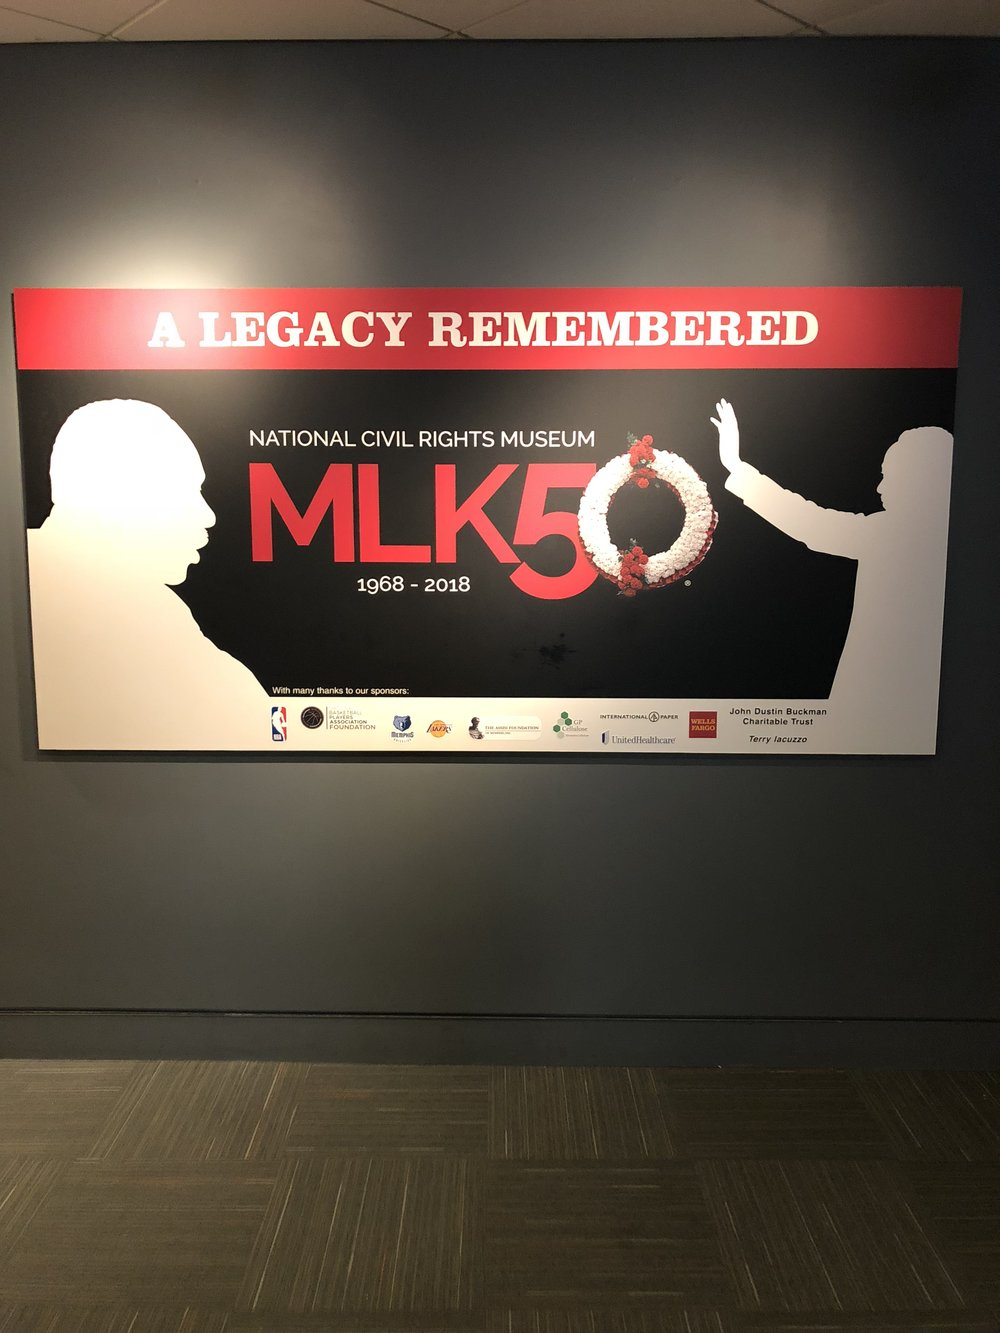 The unveiling of the new exhibit to honor Dr. King 50 years later from his death